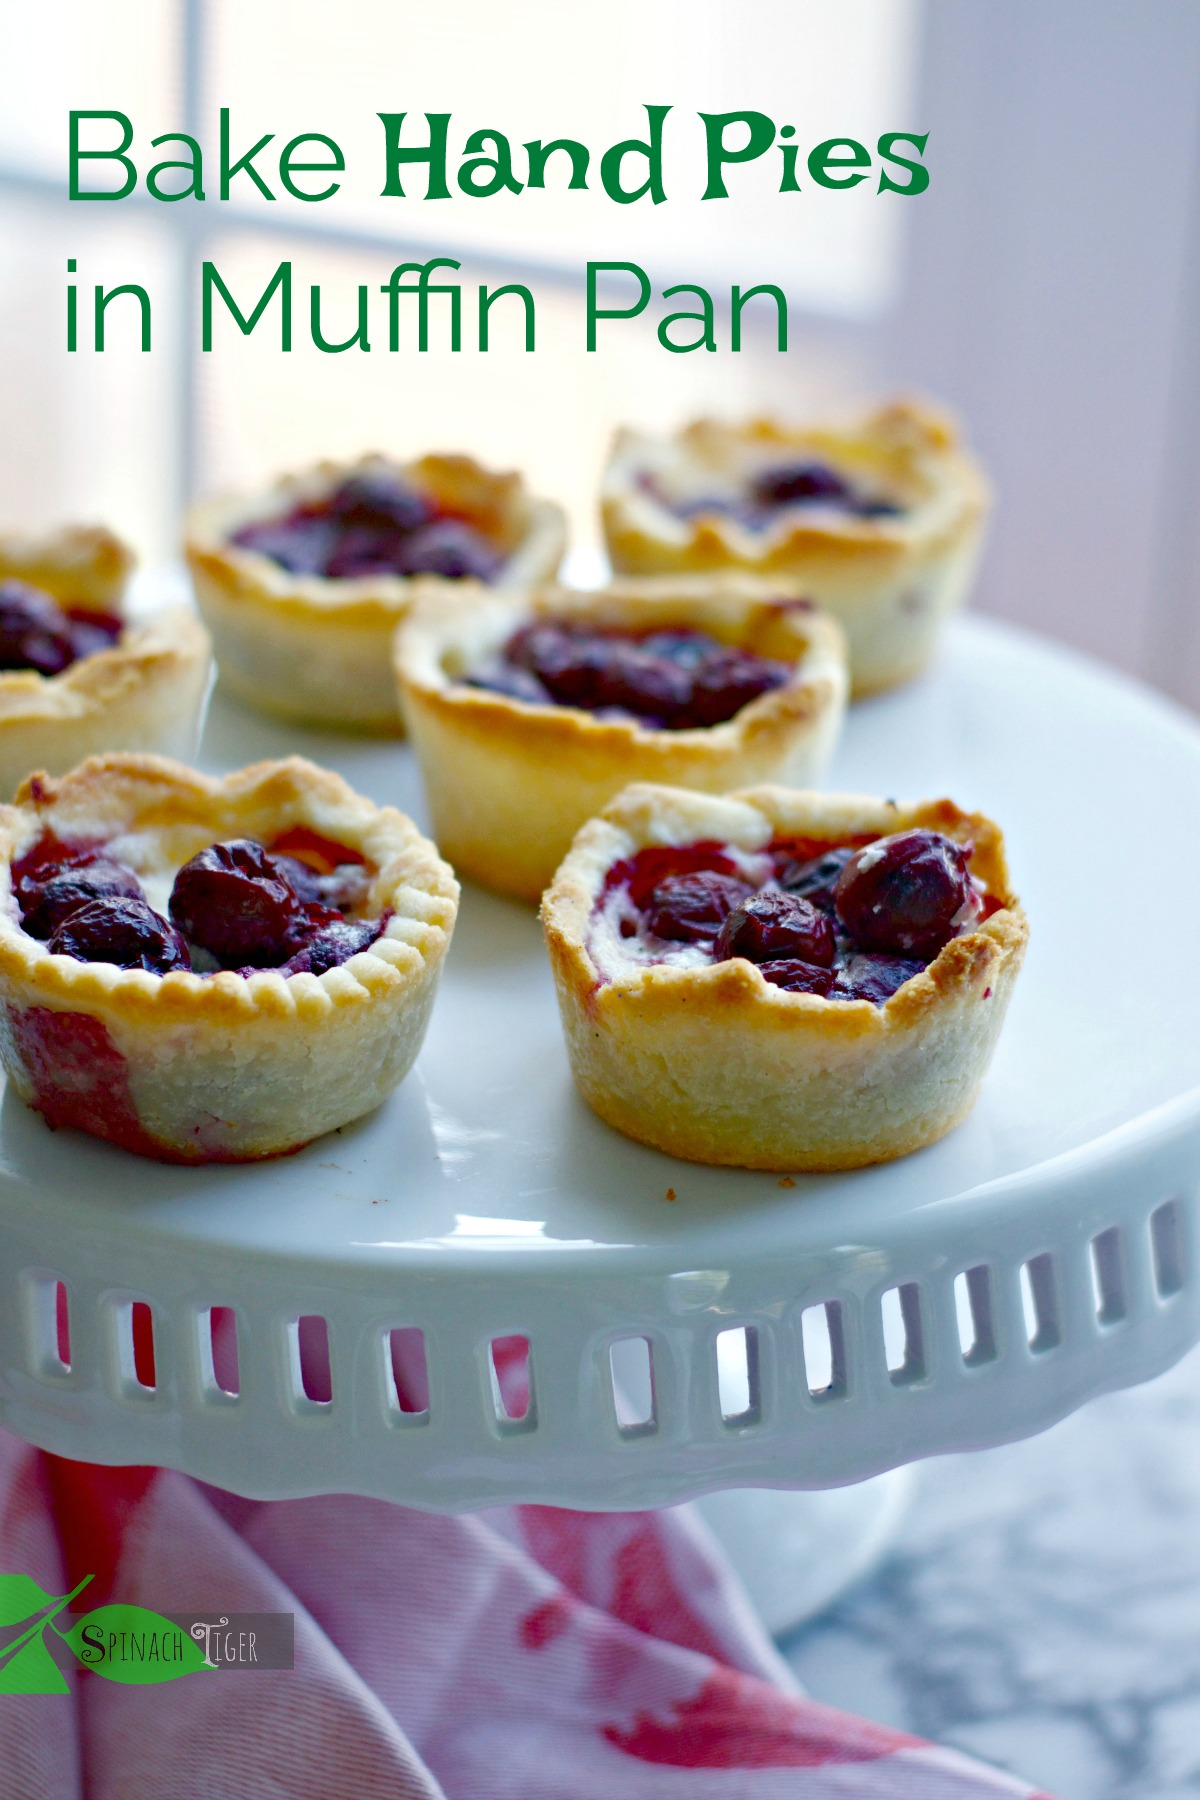 Cherry Mascarpone Mini Pie Recipes from Spinach Tiger